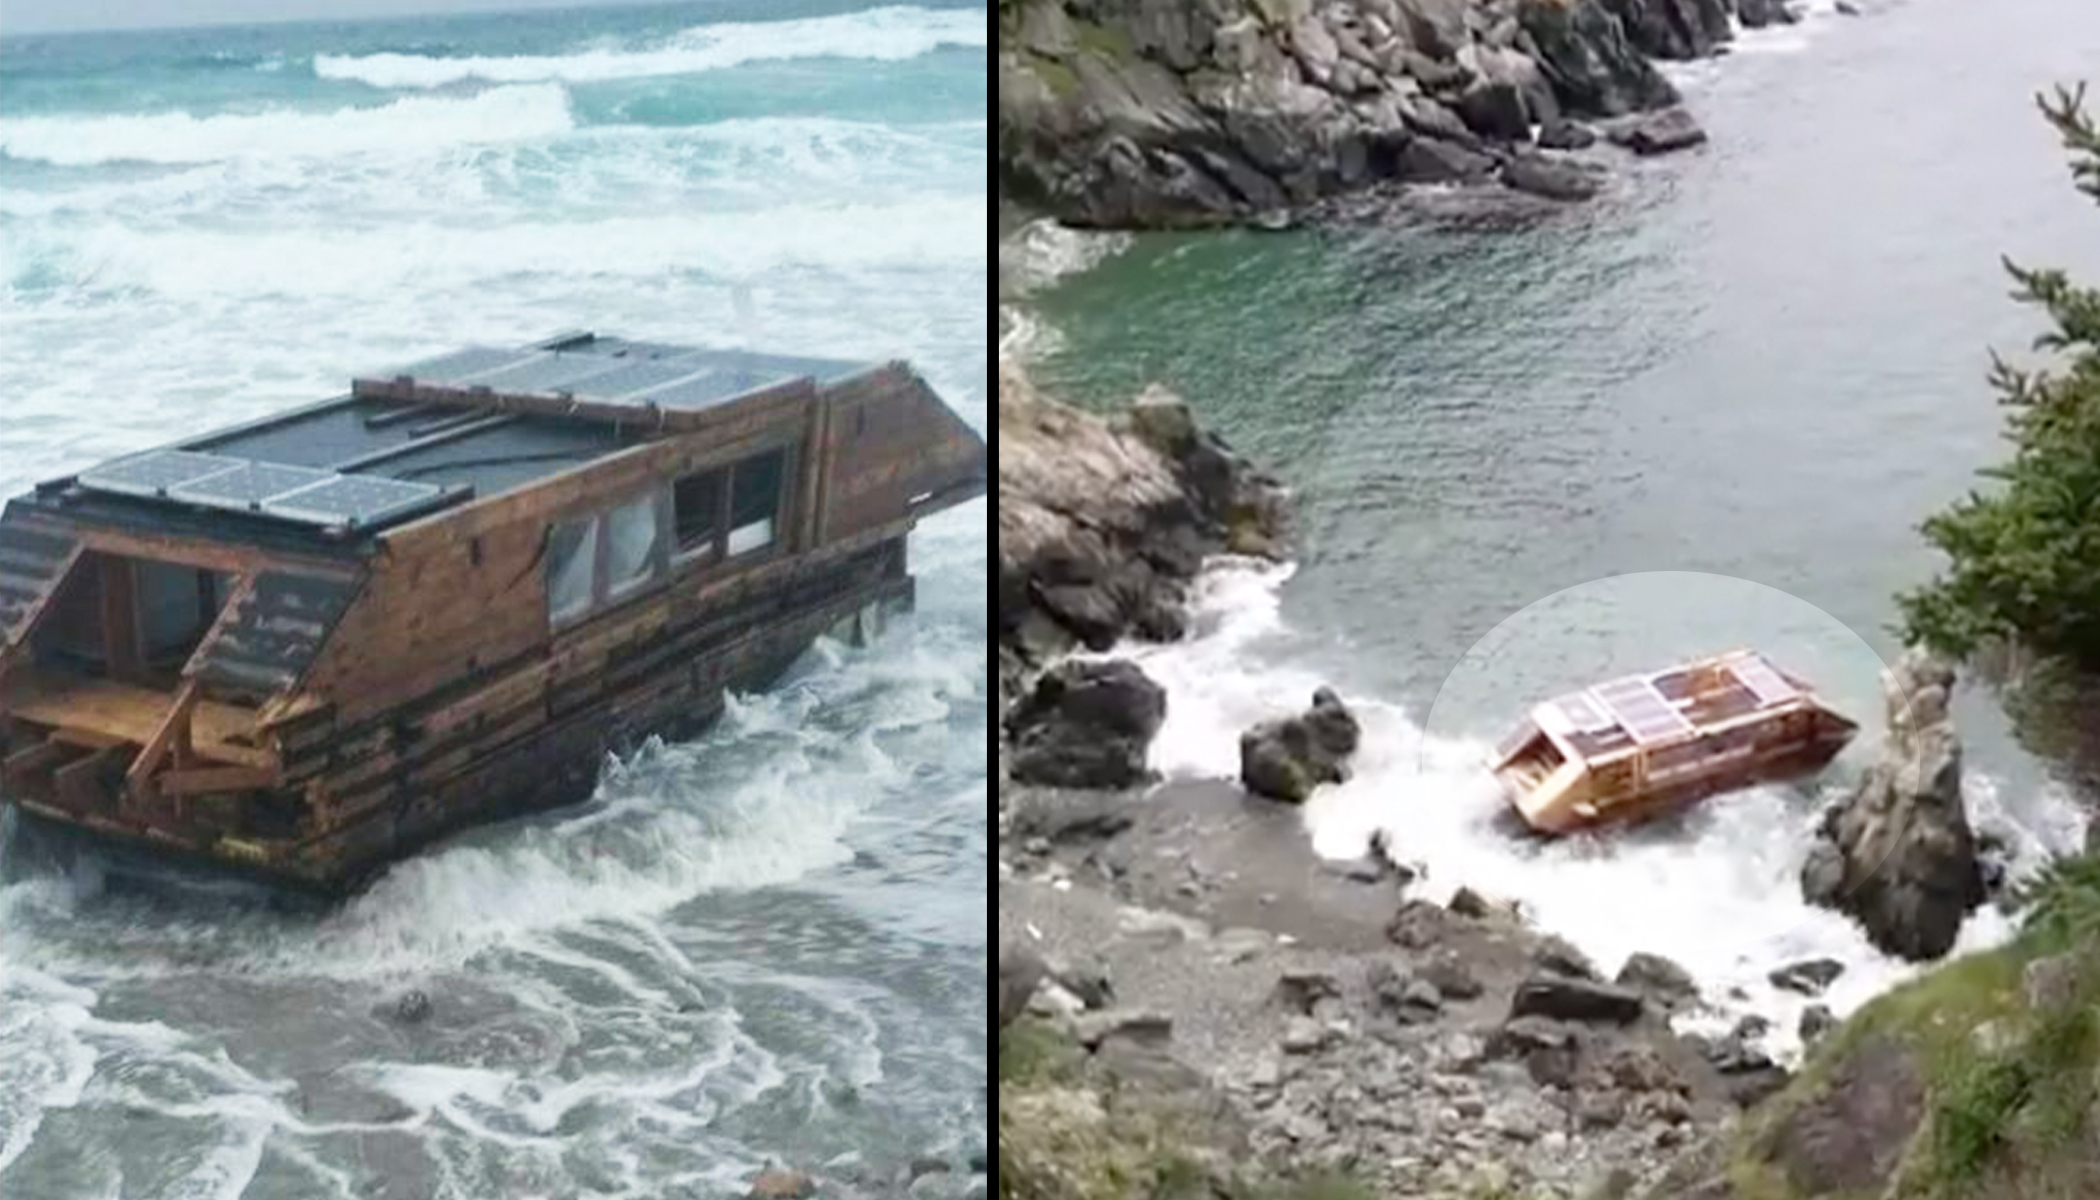 Mysterious Wooden Vessel Washes Ashore in Ireland With a Strange Message Inside